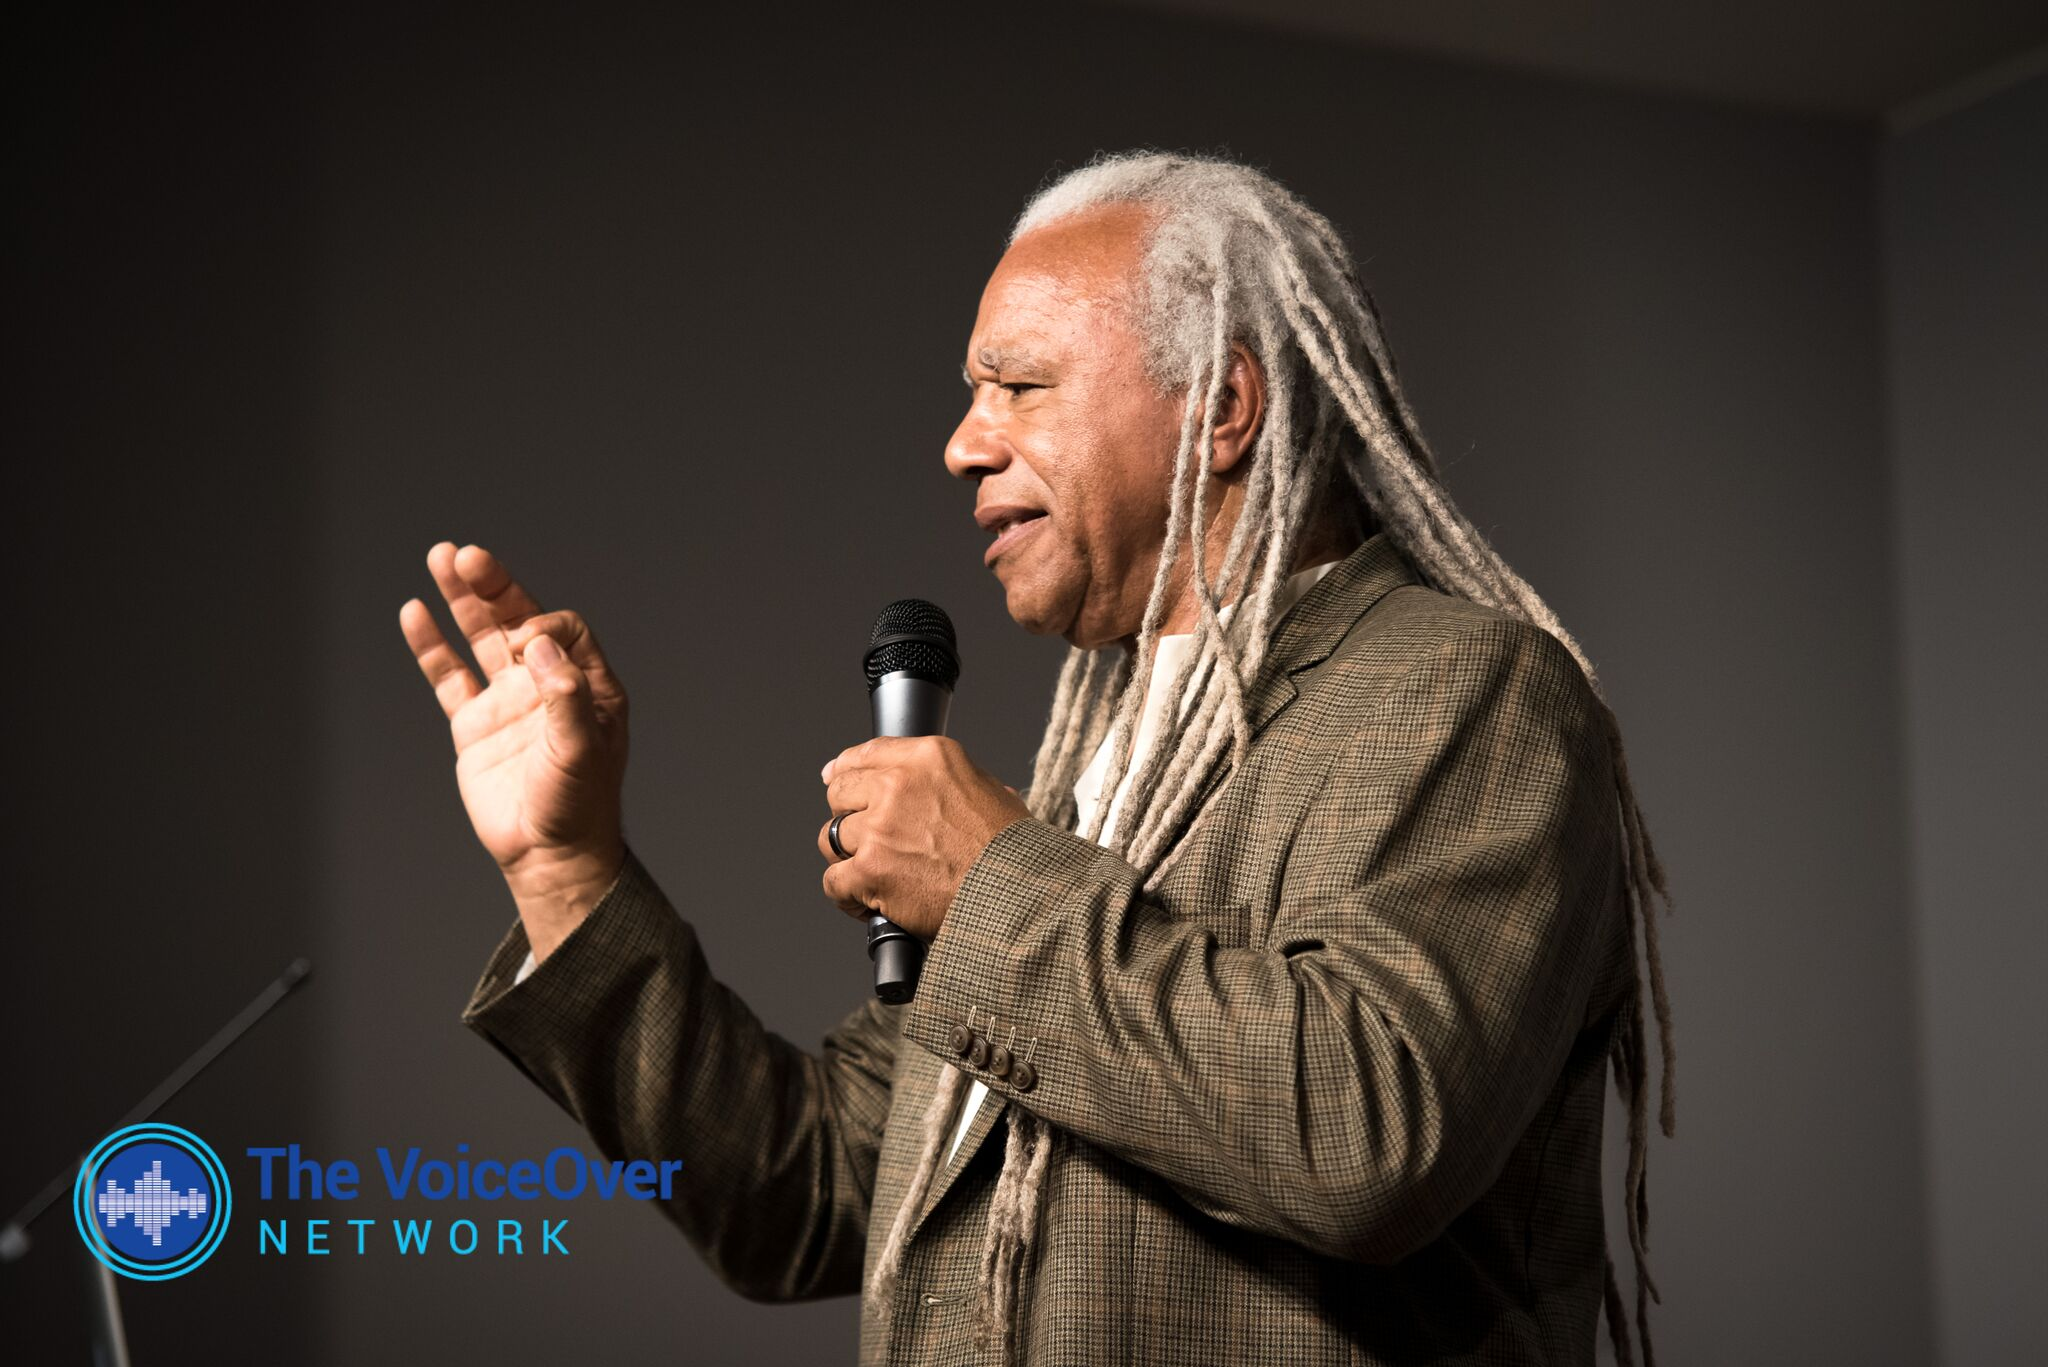 THE VOICEOVER NETWORK WITH DAVE FENNOY